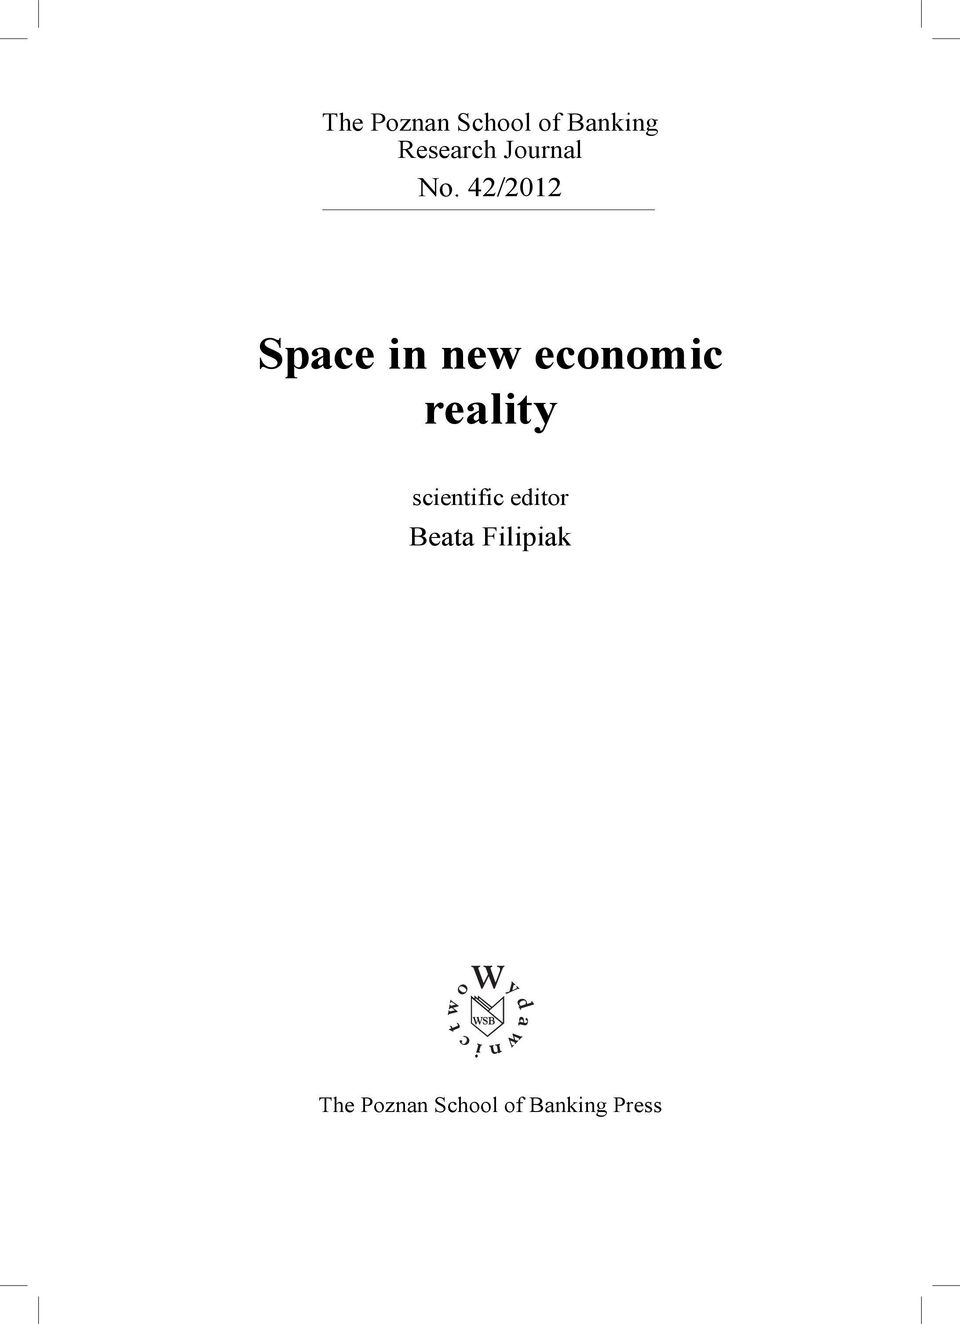 42/2012 Space in new economic reality